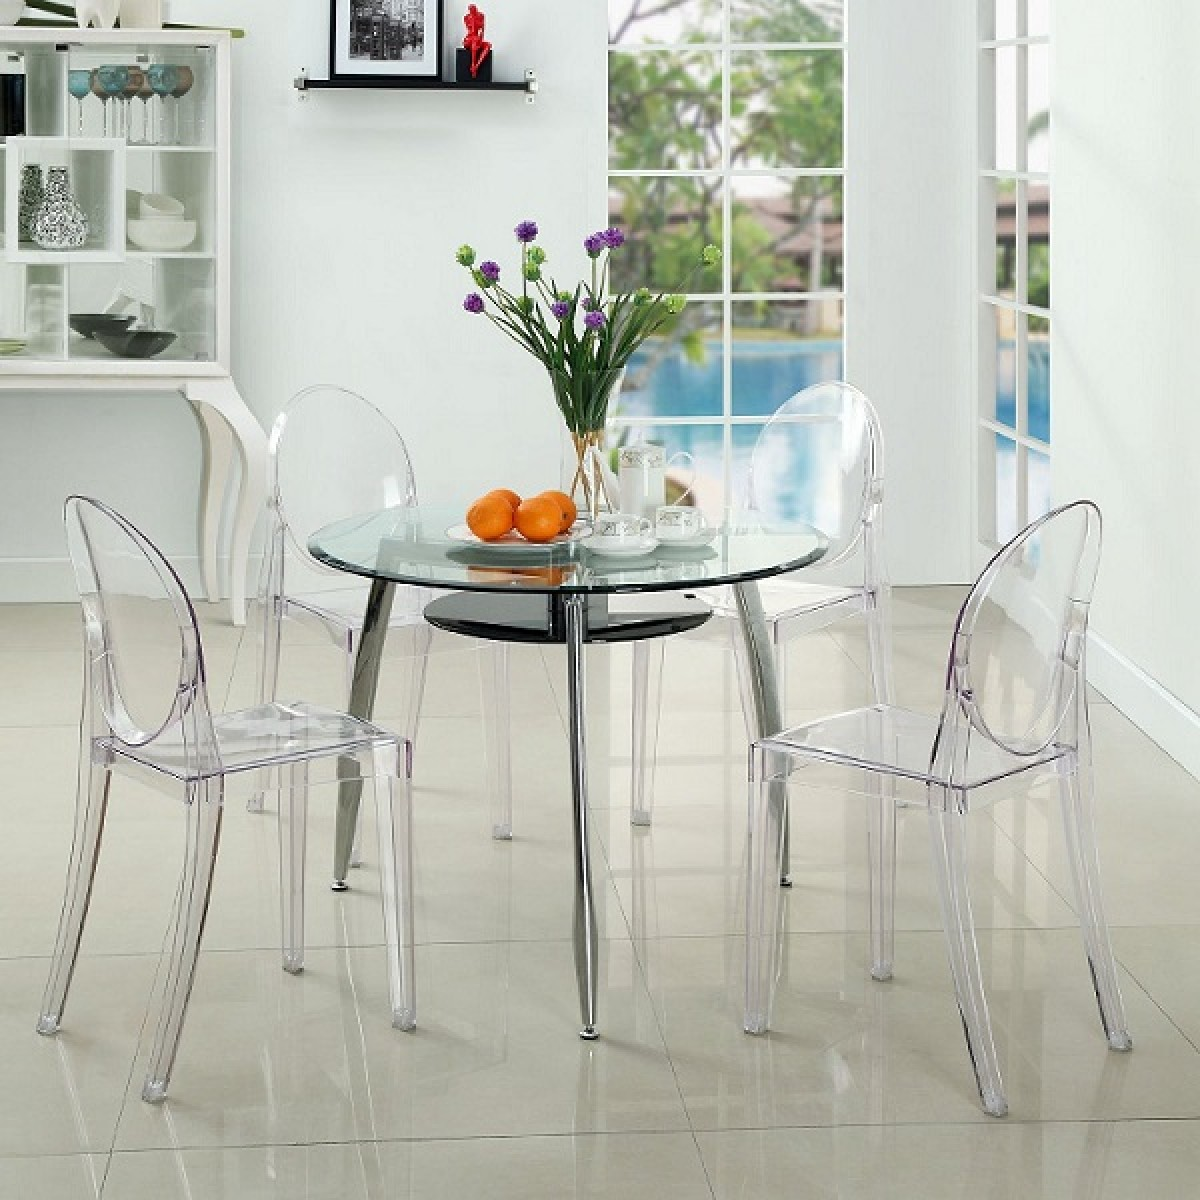 Victoria style ghost dining chair clear color